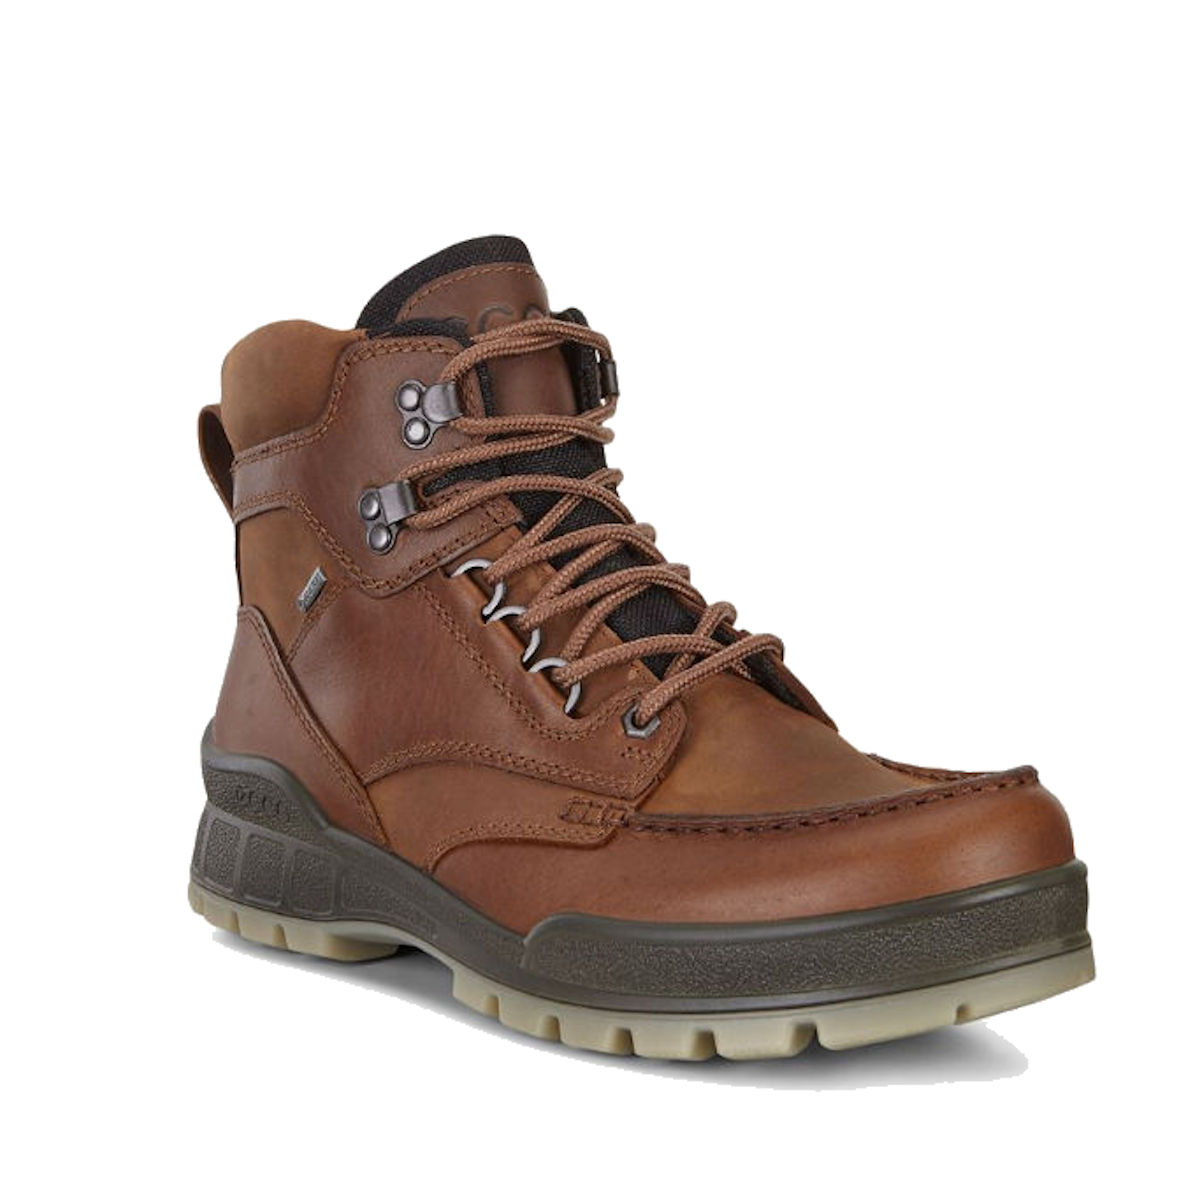 ECCO Track 25 - Mens Gor-Tex Hi Bison Hiking Boot